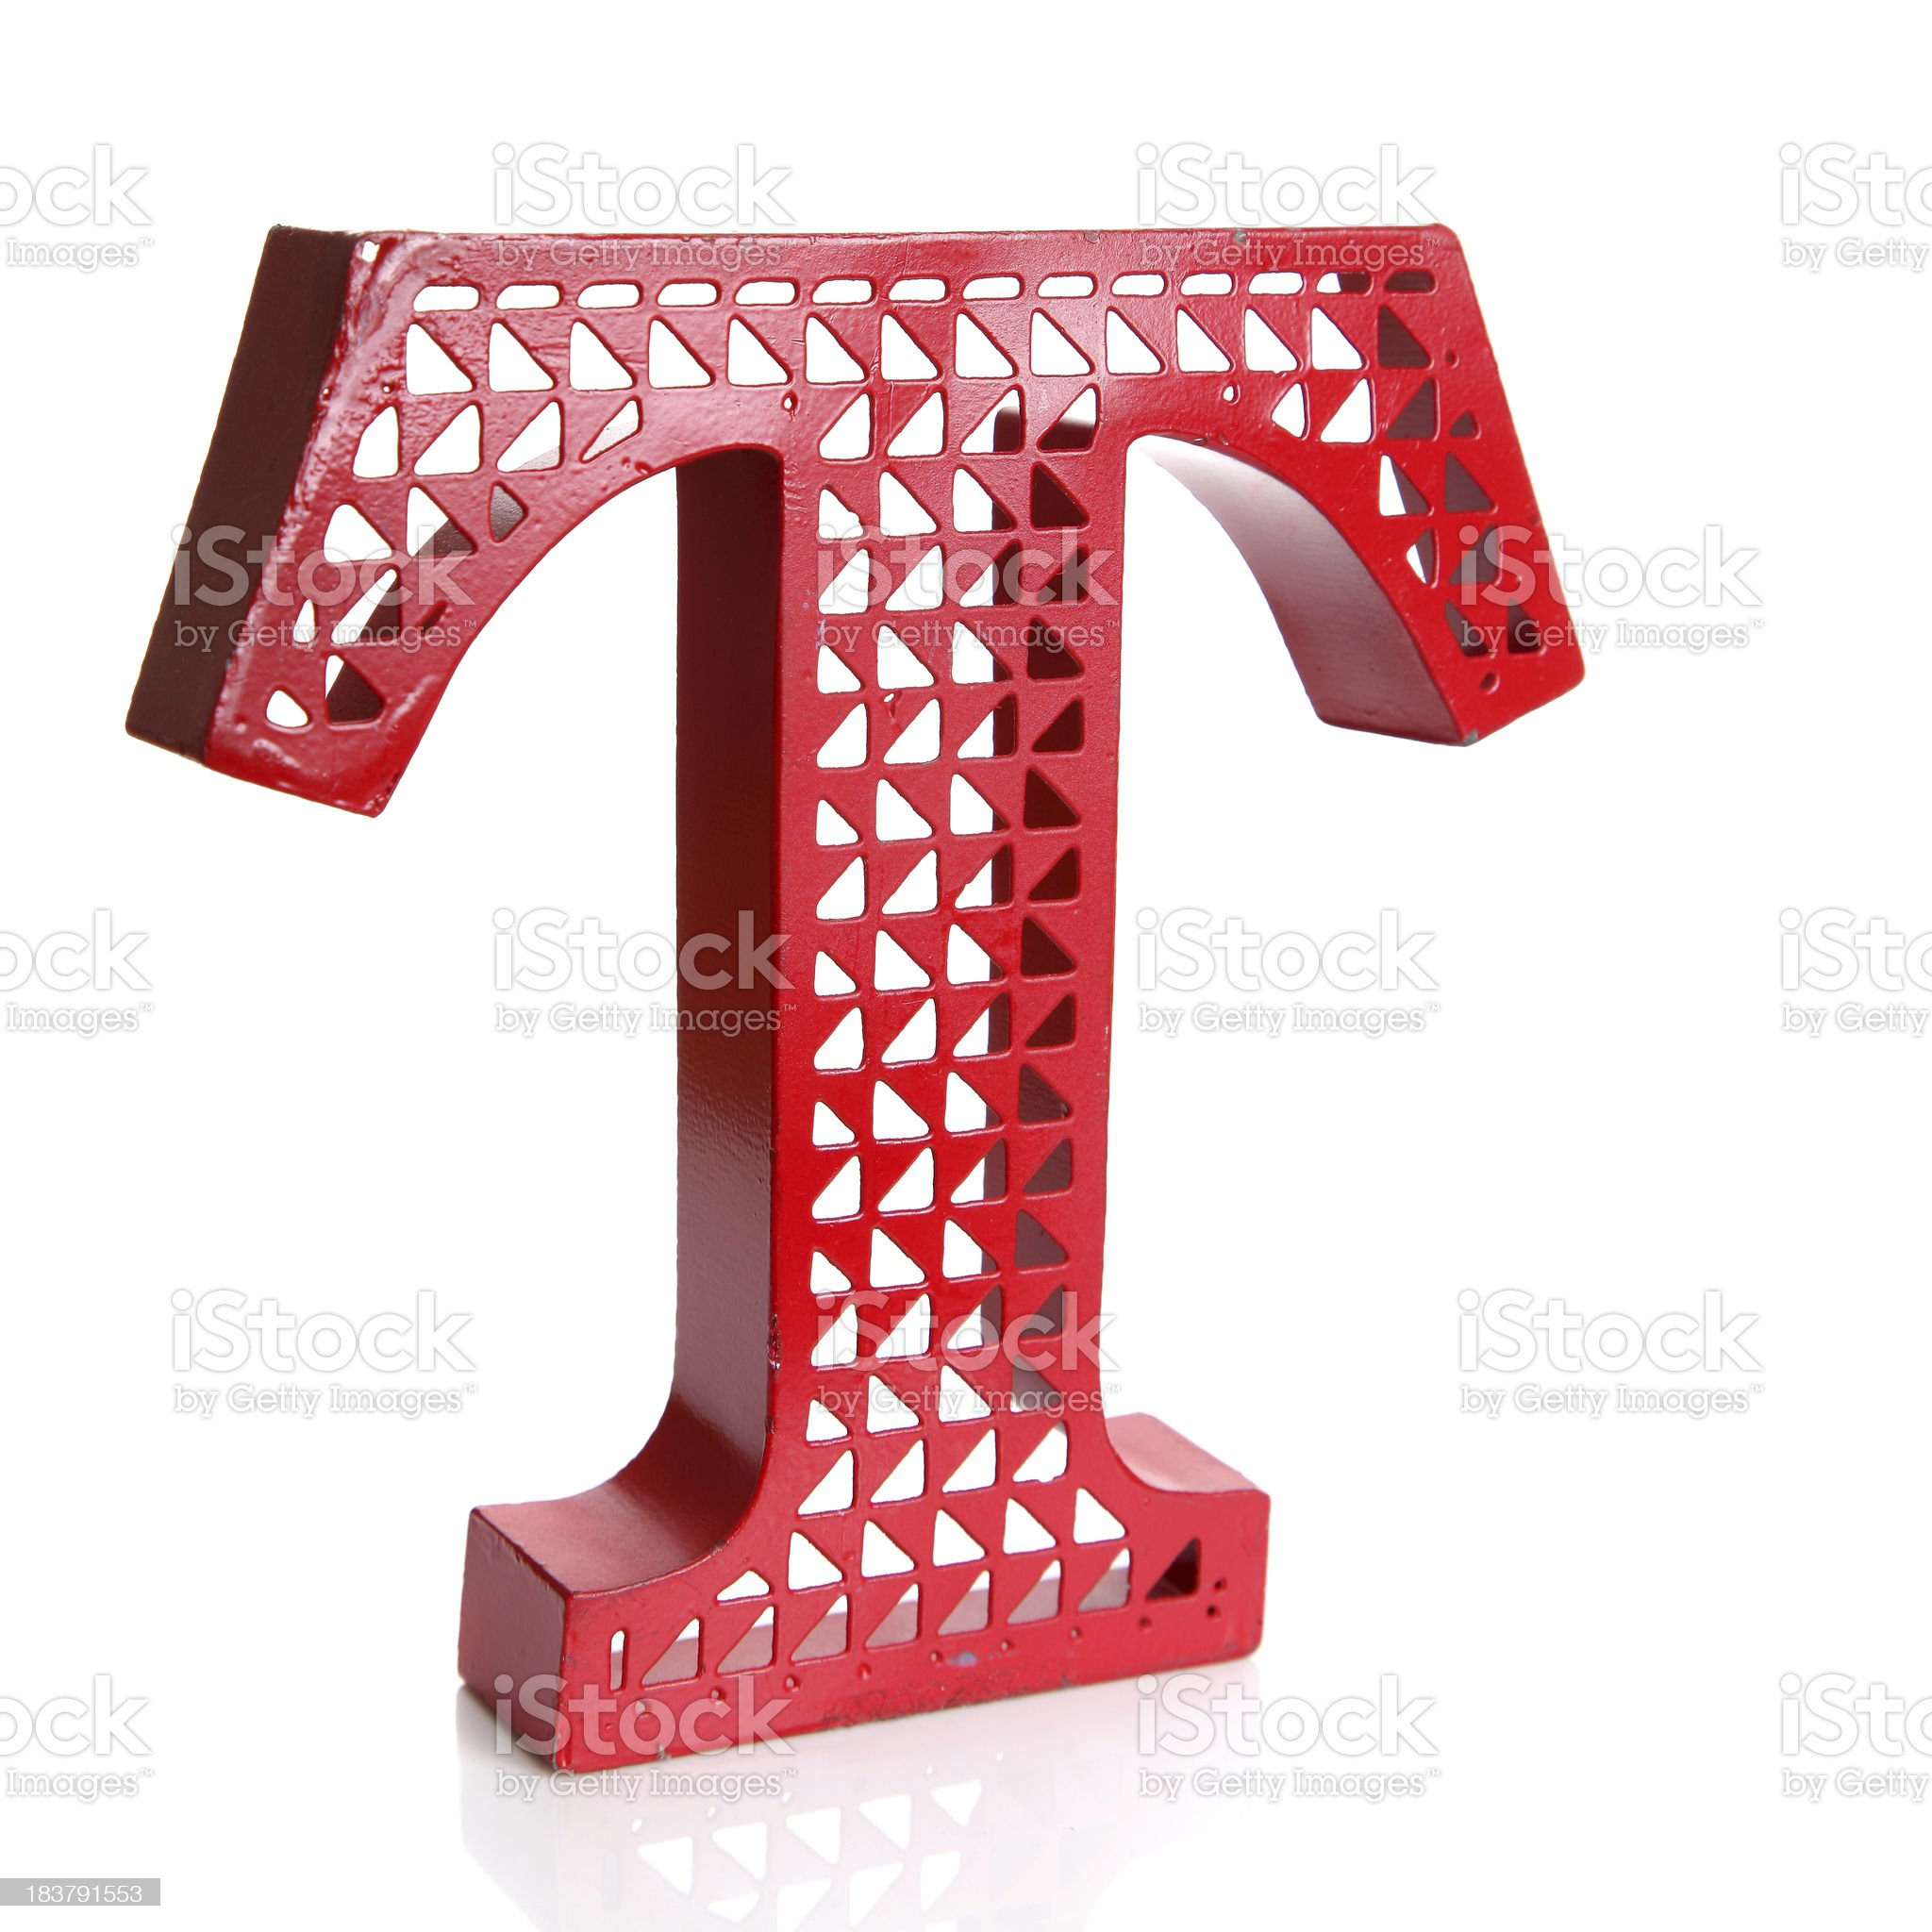 Red letter T royalty-free stock photo